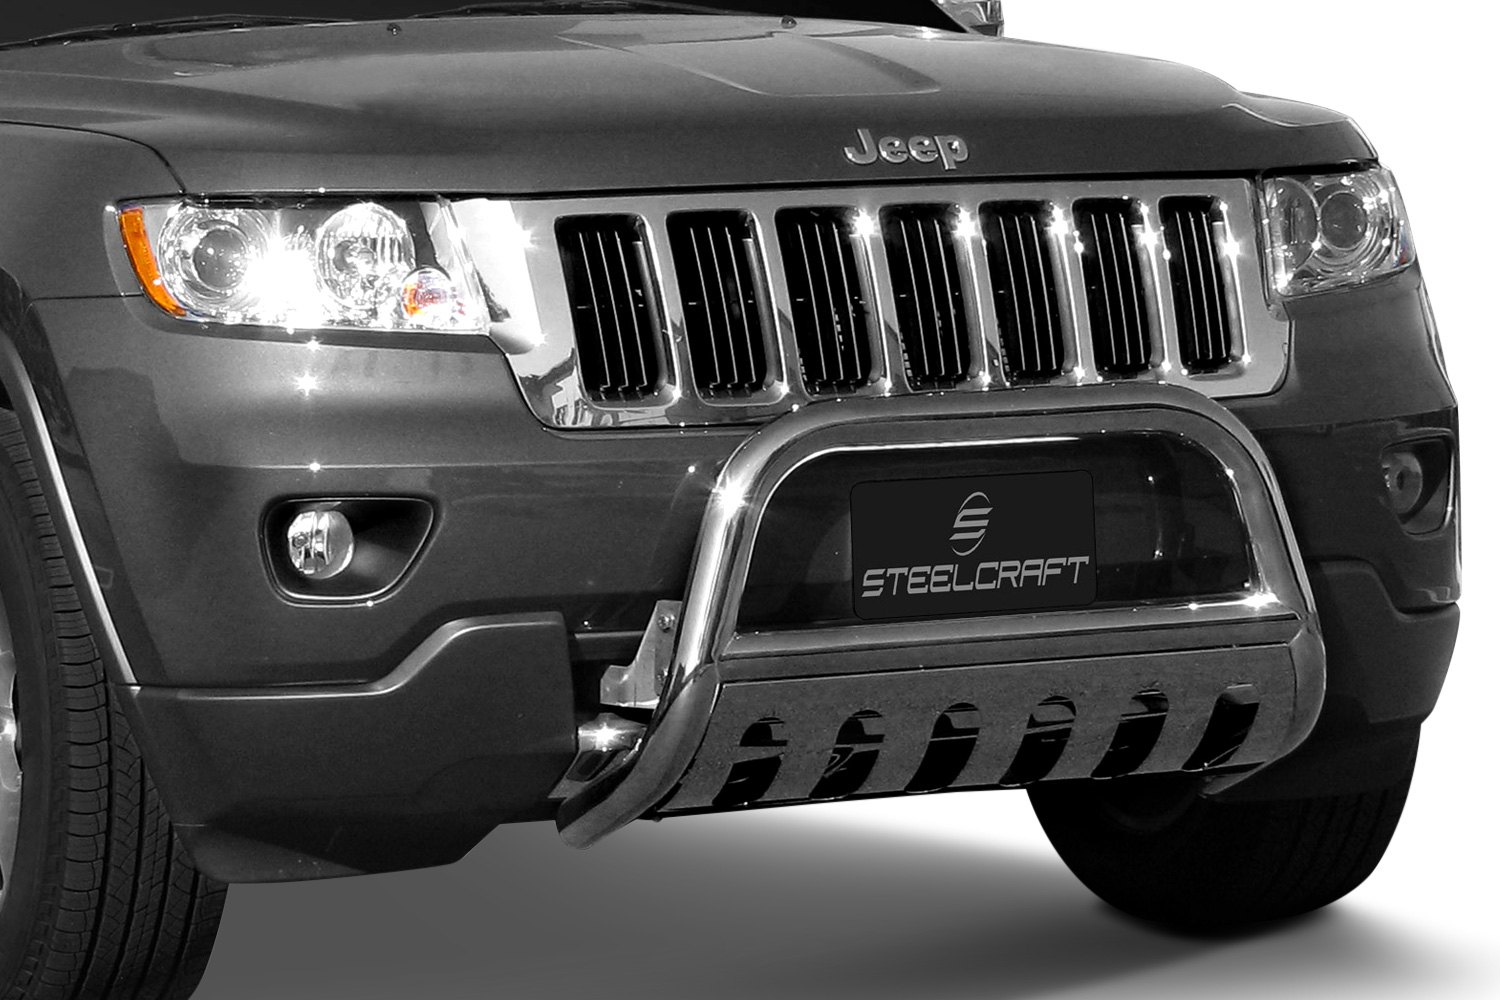 Steelcraft Jeep Grand Cherokee Without Cruise Control Sensor 2011